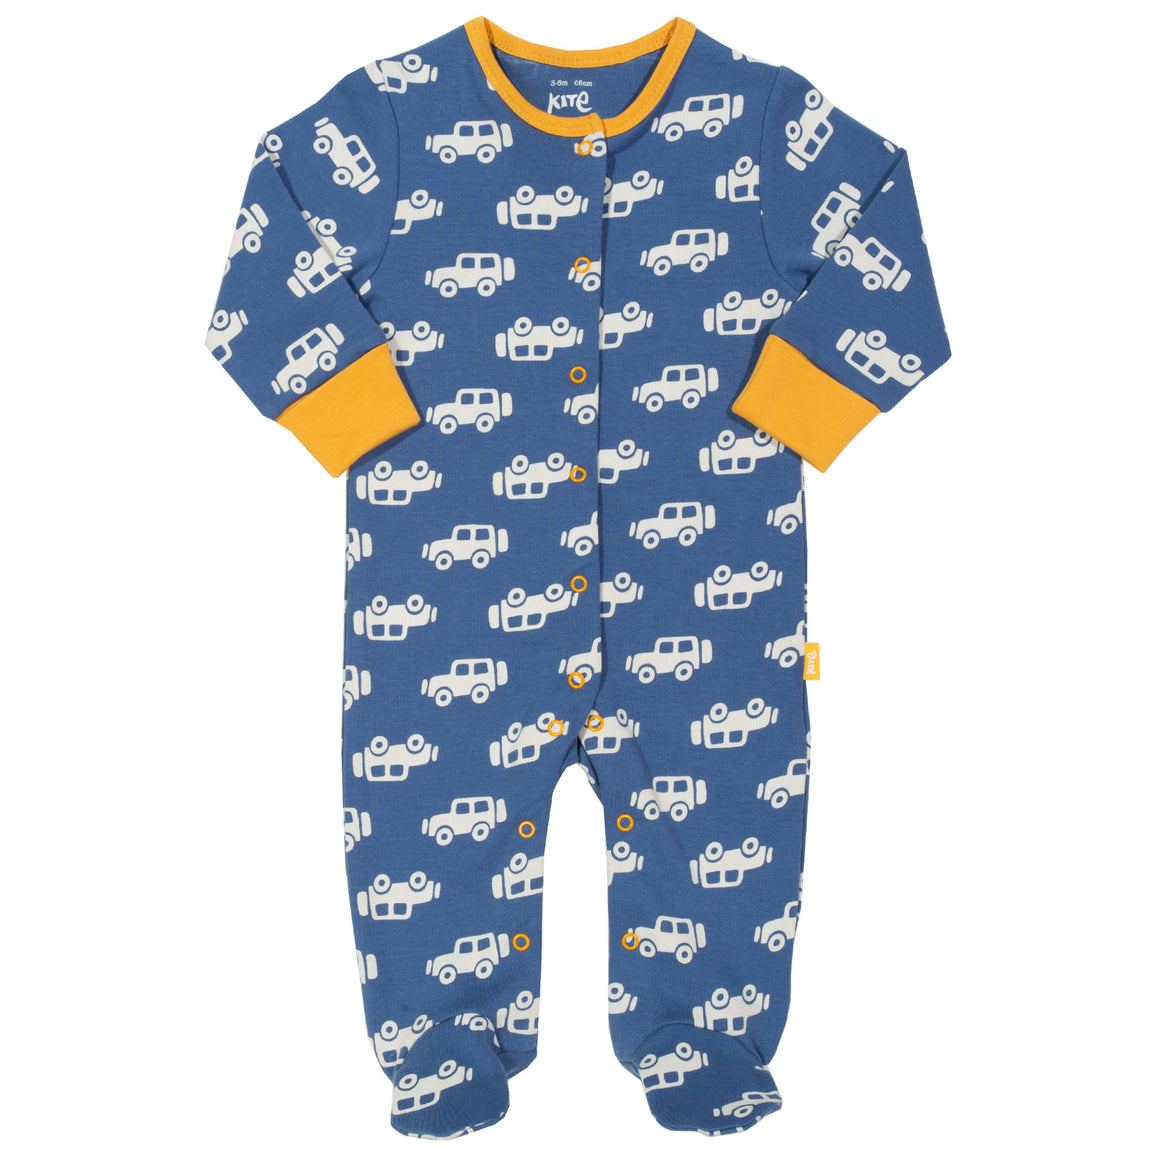 New Kite off-road sleepsuit size 18-24 months